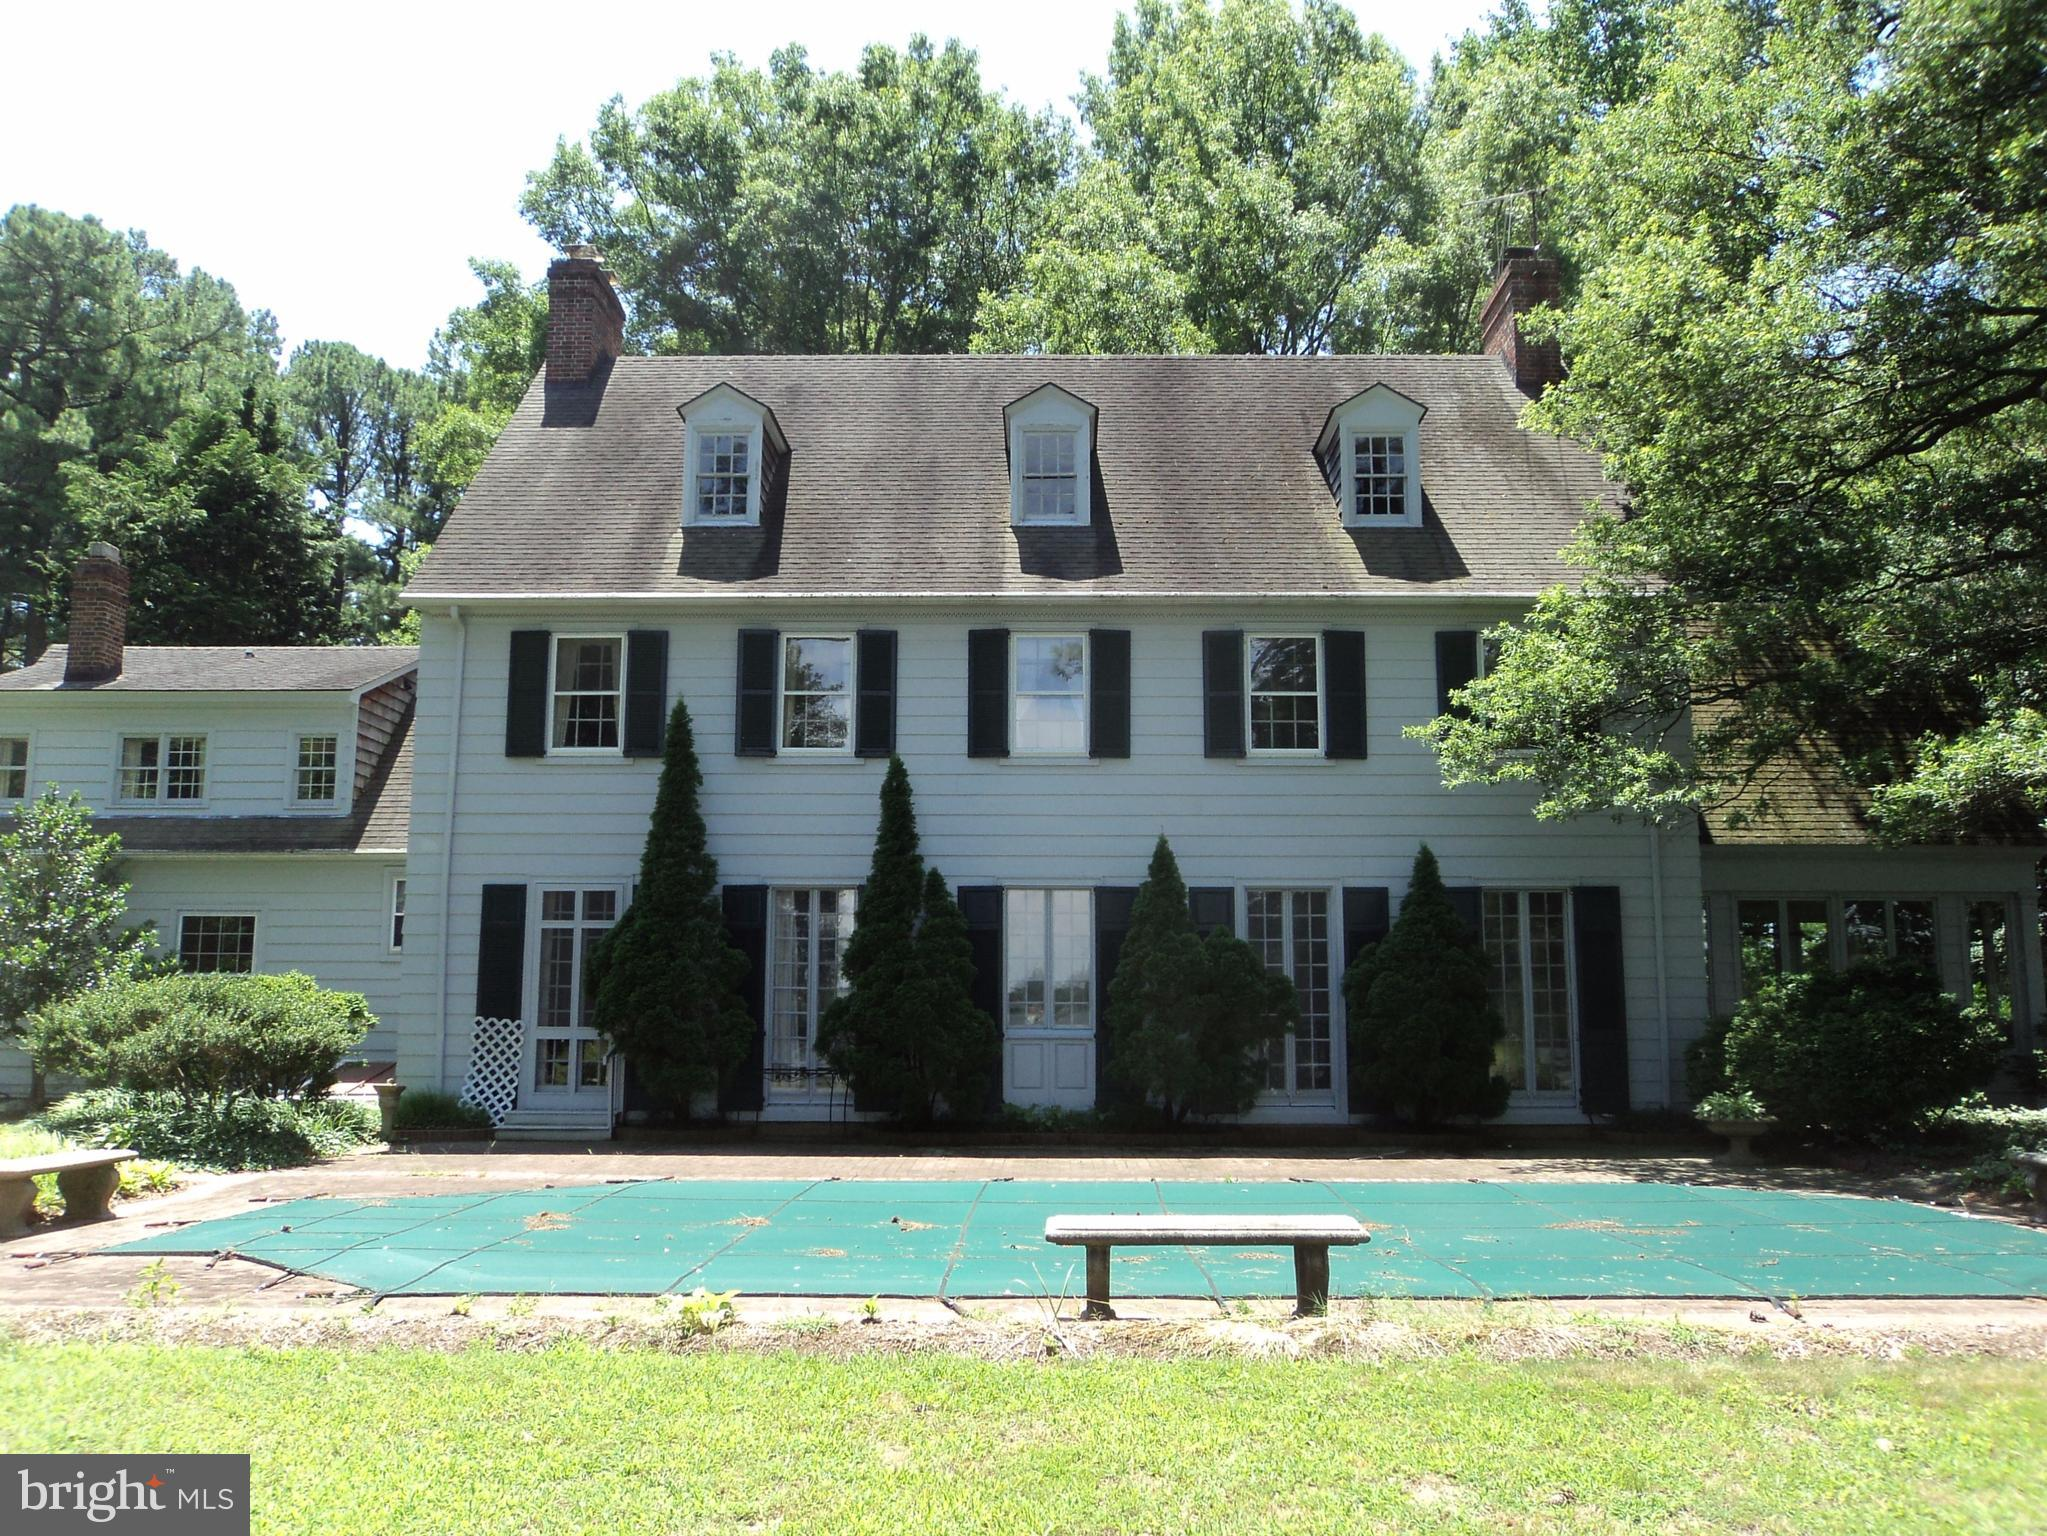 0 DONCASTER ROAD, EASTON, MD 21601